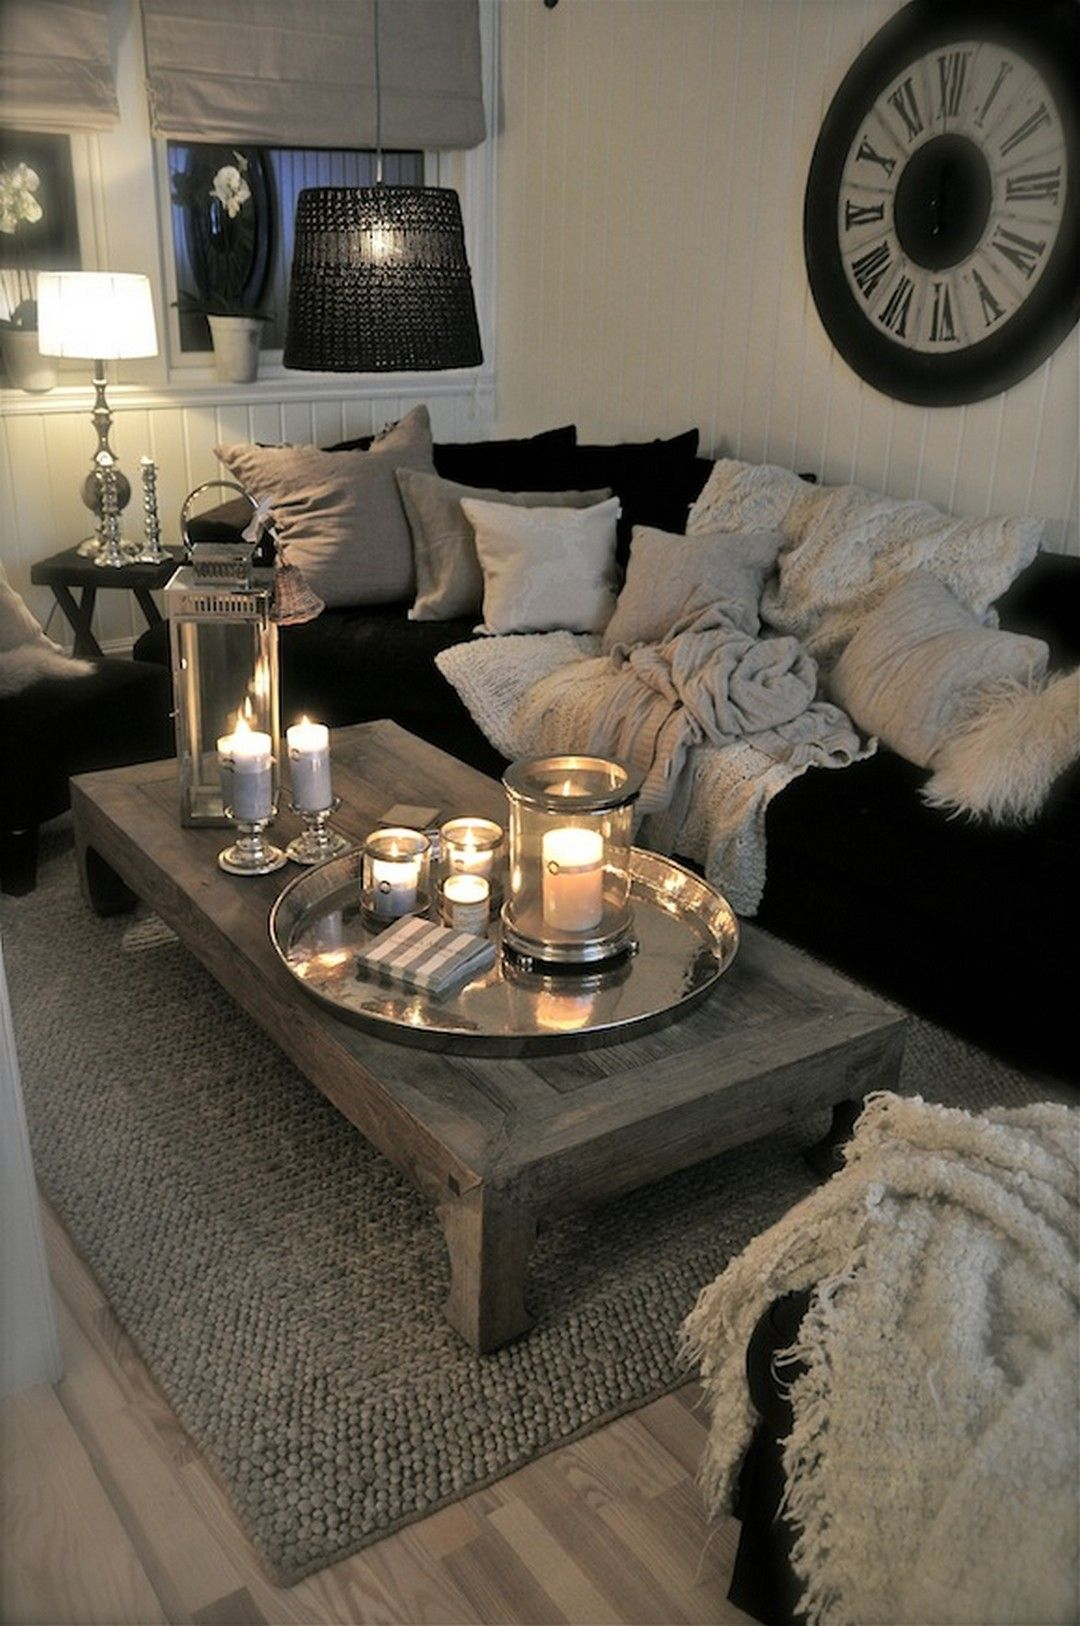 99 Easy Diy First Apartement Decorating Ideas Easy: decorating my first apartment